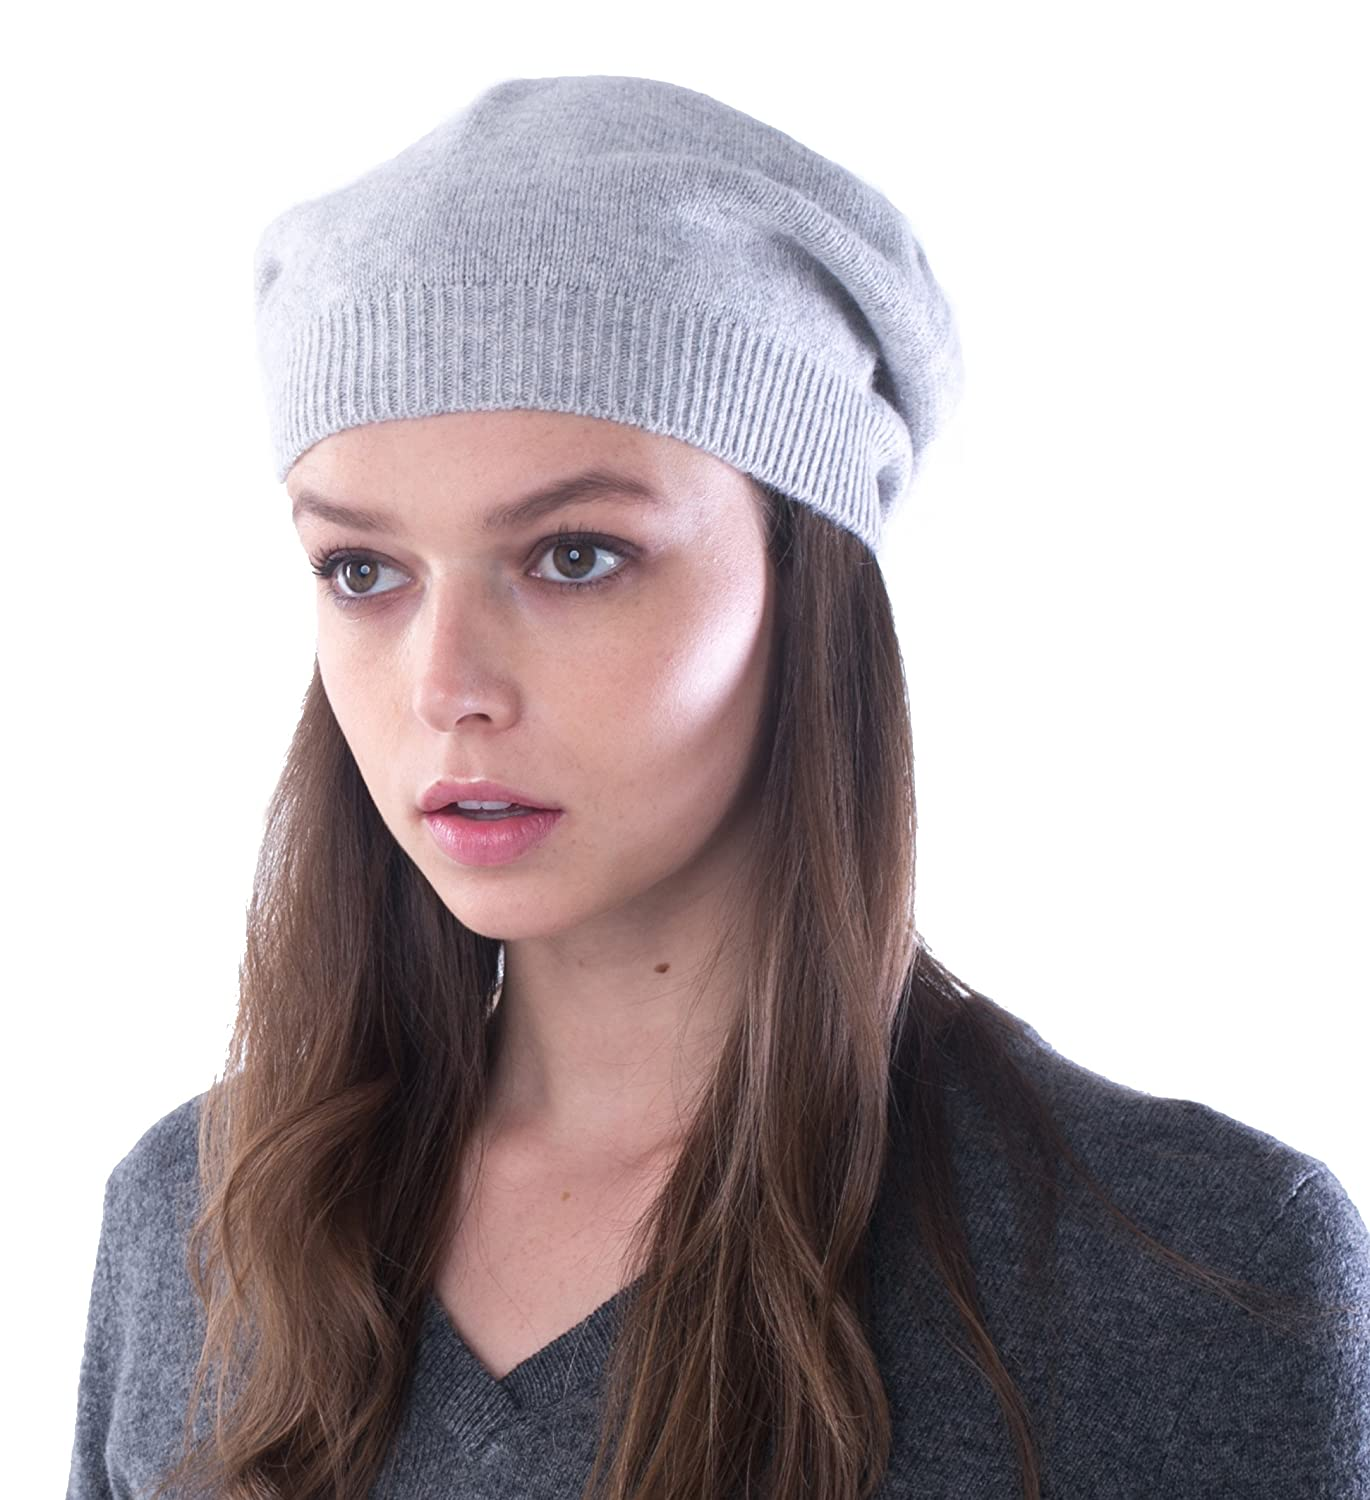 cashmere 4 U 100% Pure Cashmere Knitted Beret Hat for Women HAT401